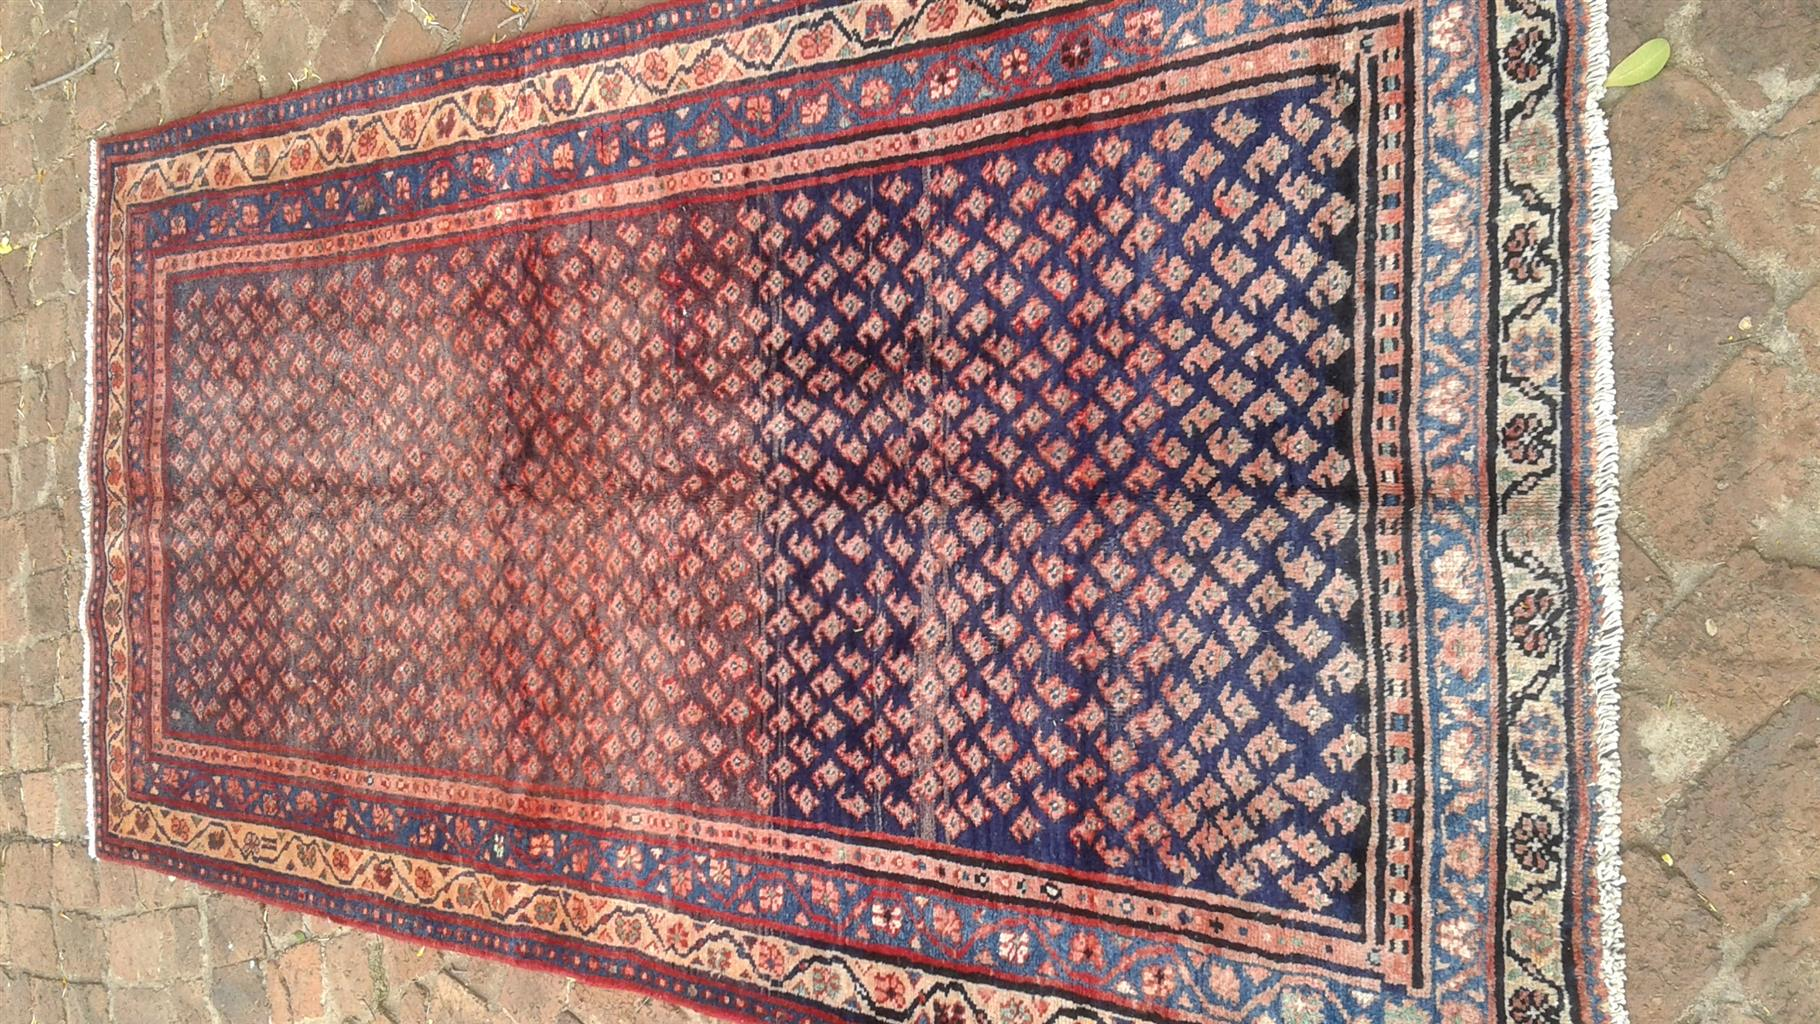 Mir handmade Persian carpet